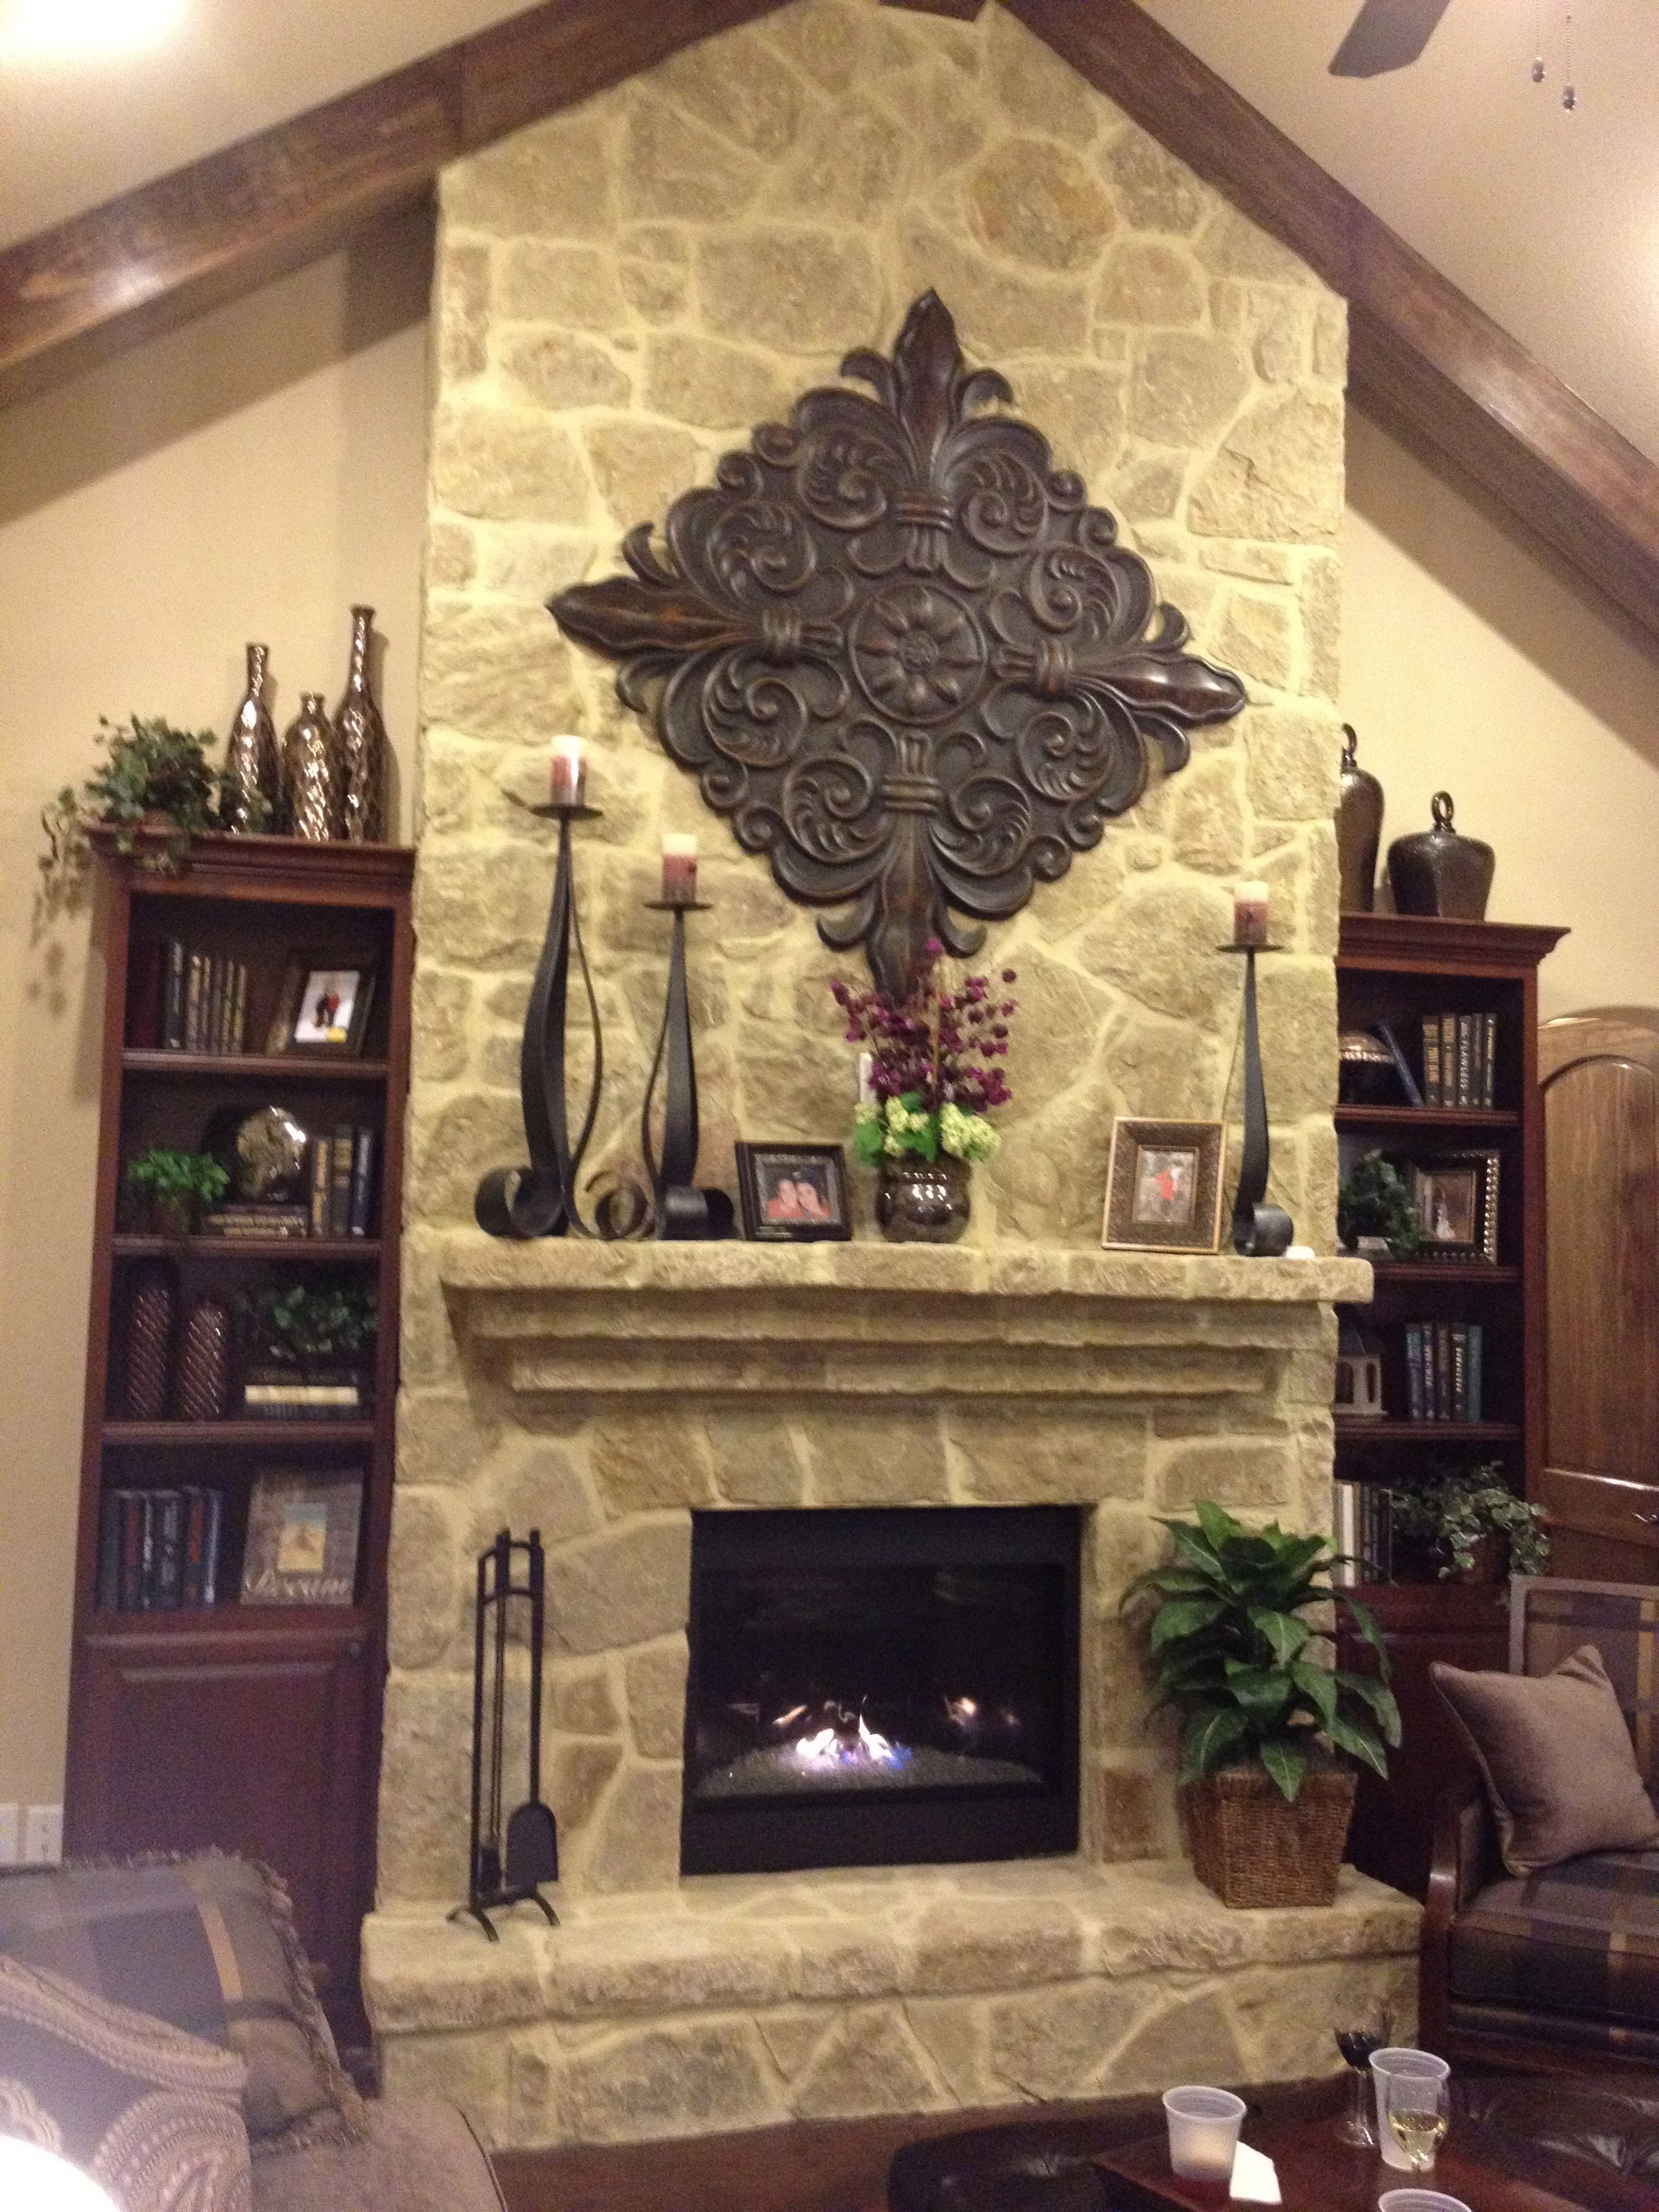 How To Decorate A Rustic Fireplace Mantel Decor Indoor Outdoor Image Of With Stone. home decor. home office decor. modern home decor. cheap home decor.